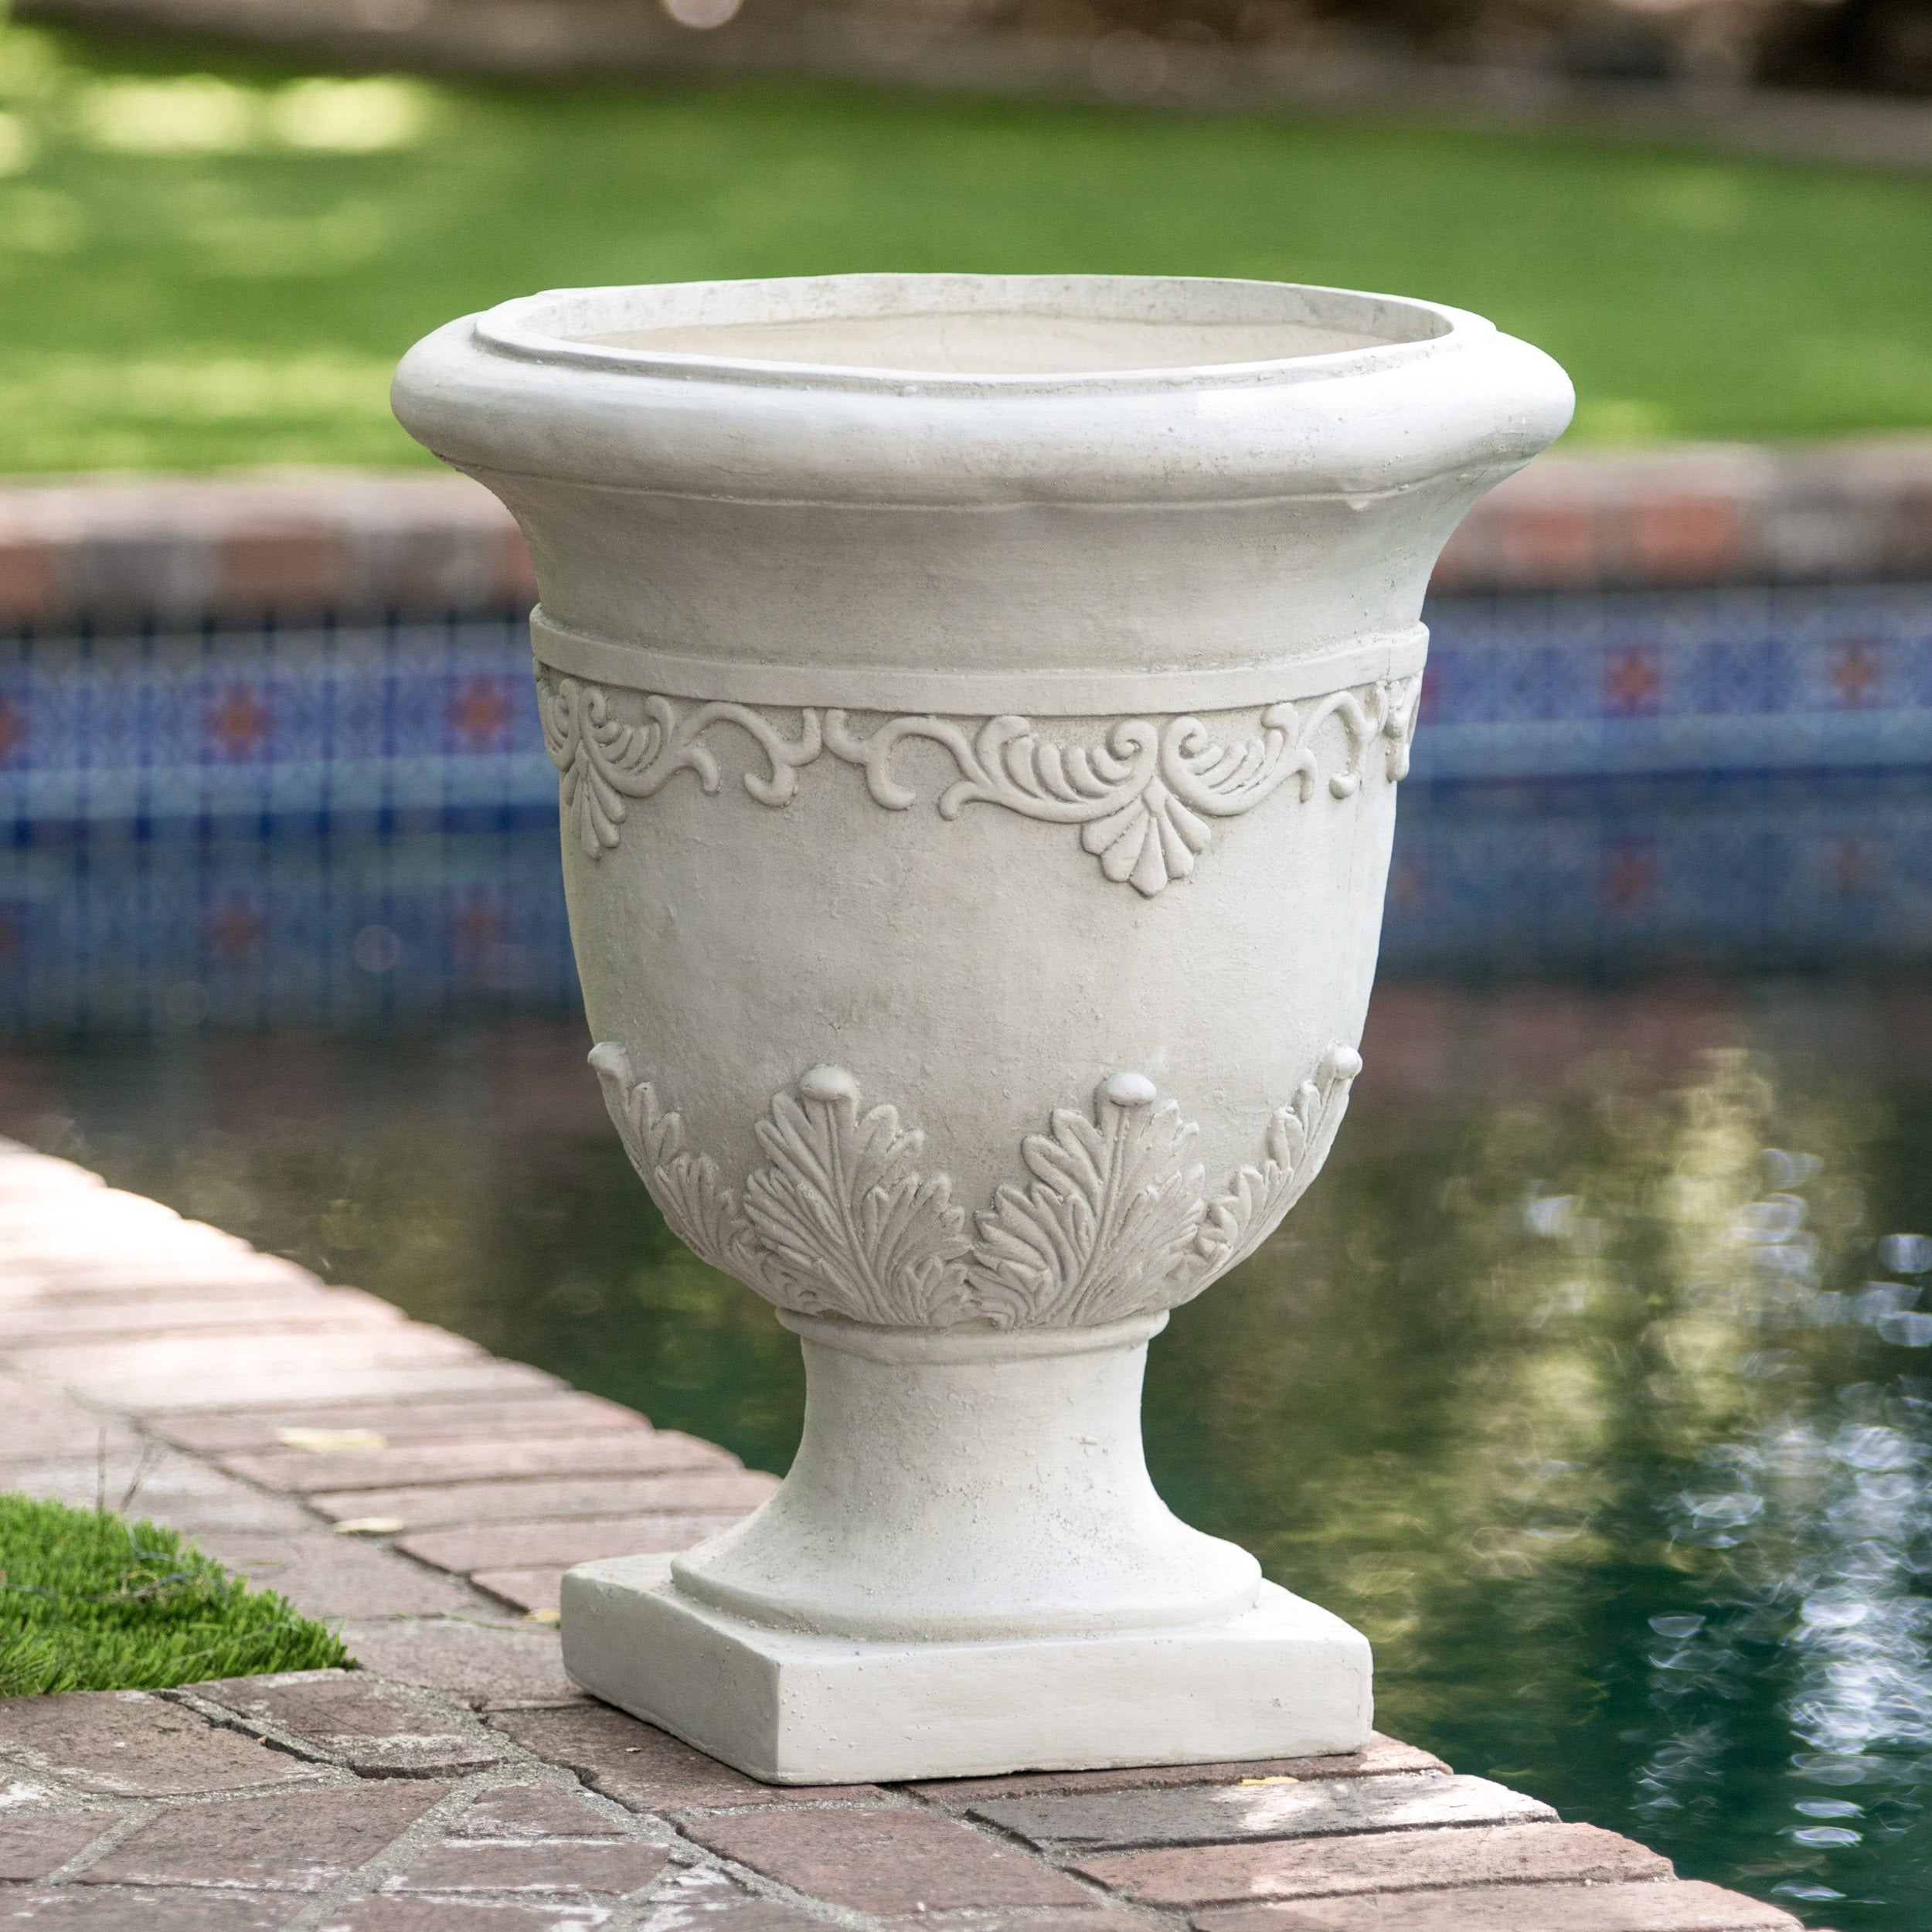 flair featured house living urns appointed a our decor planter garden blue selling home pin to in chic ceramic offers beautiful large glazed luxury finish magazine the southern with well best